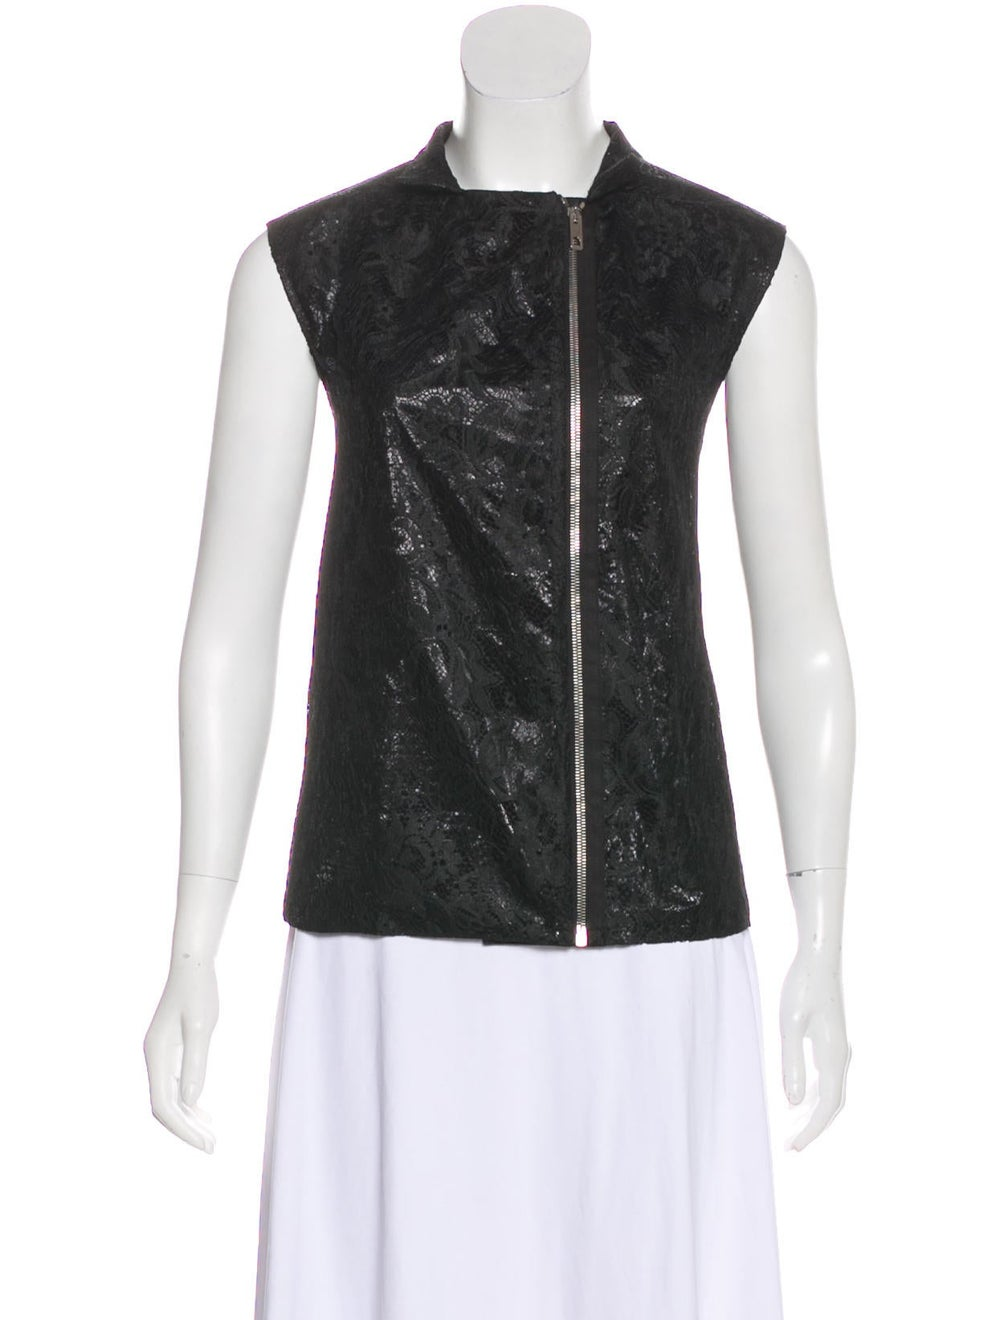 Balenciaga Lace Sleeveless Top Black - image 4